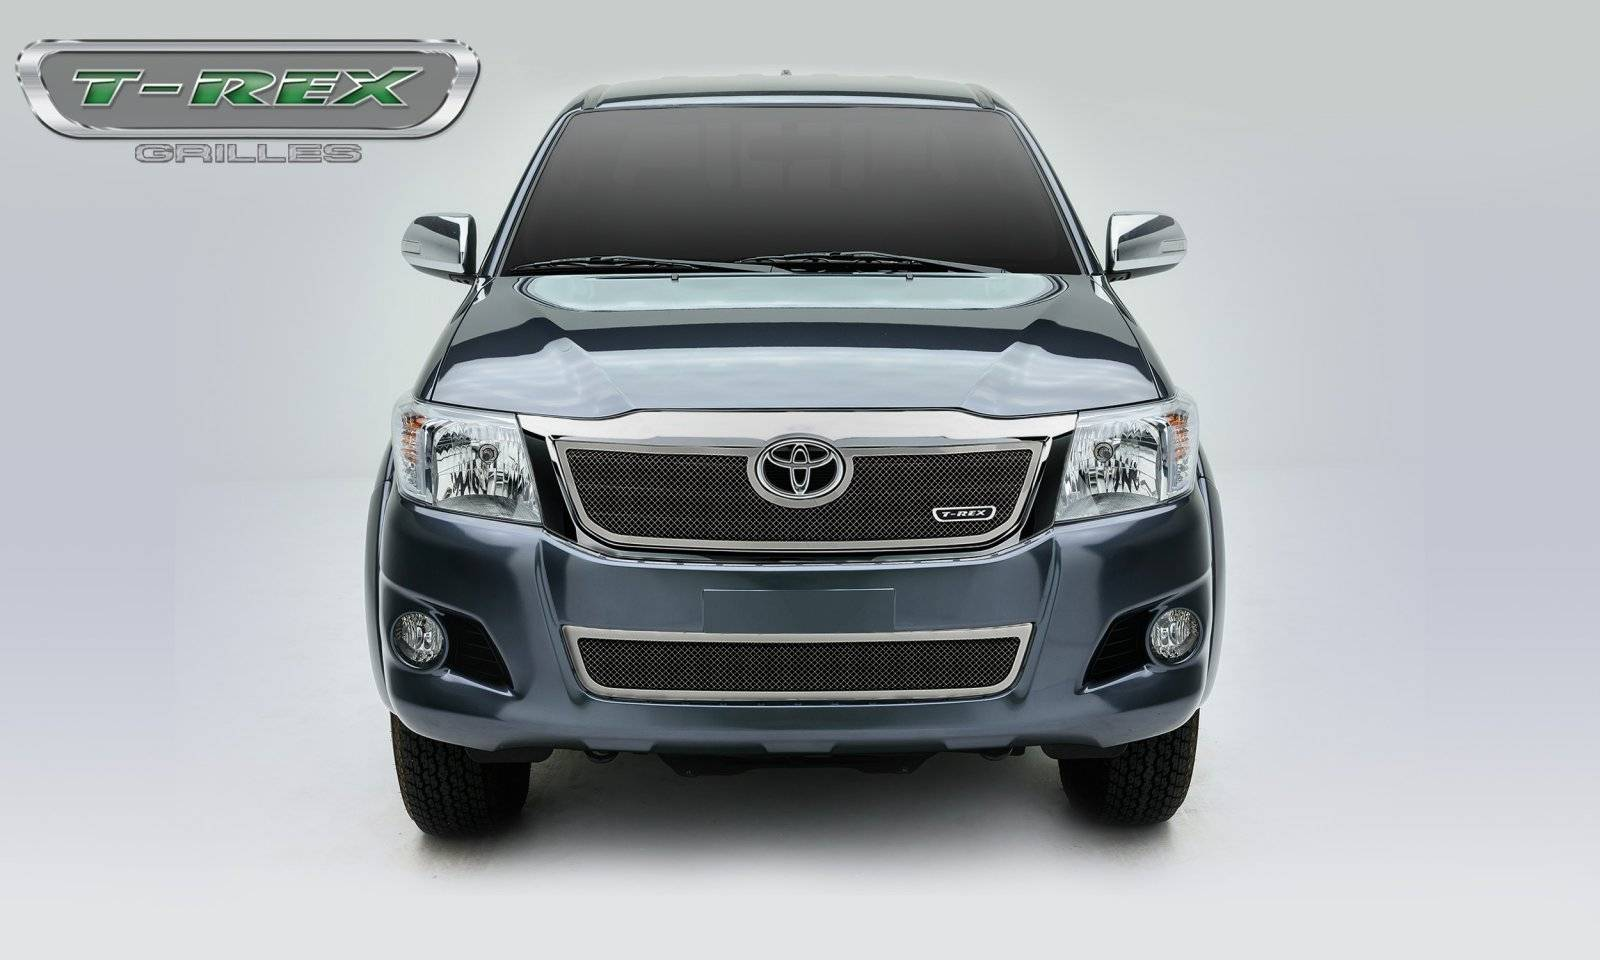 T-REX Toyota Hilux Upper Class, Formed Mesh Grille, Main, Overlay, 1 Pc, Chrome Plated Stainless Steel - Pt # 56909